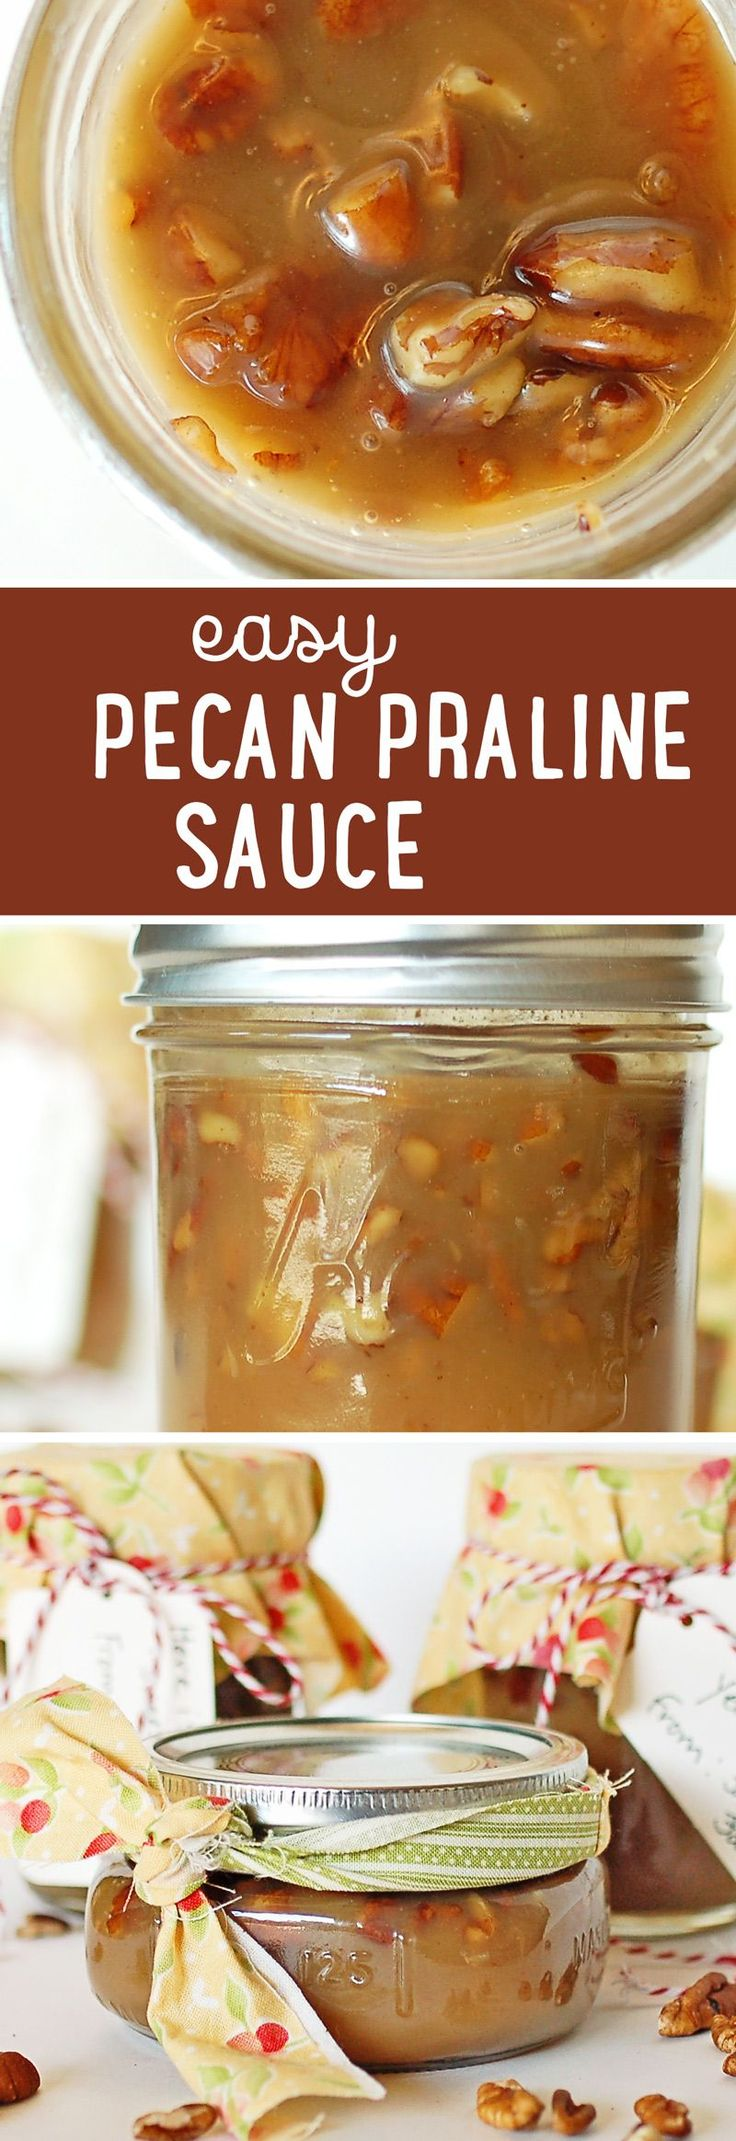 Easy Pecan Praline Sauce (teacher gift) #pecanpralinesauce #pecans #teachergift #giftinjars